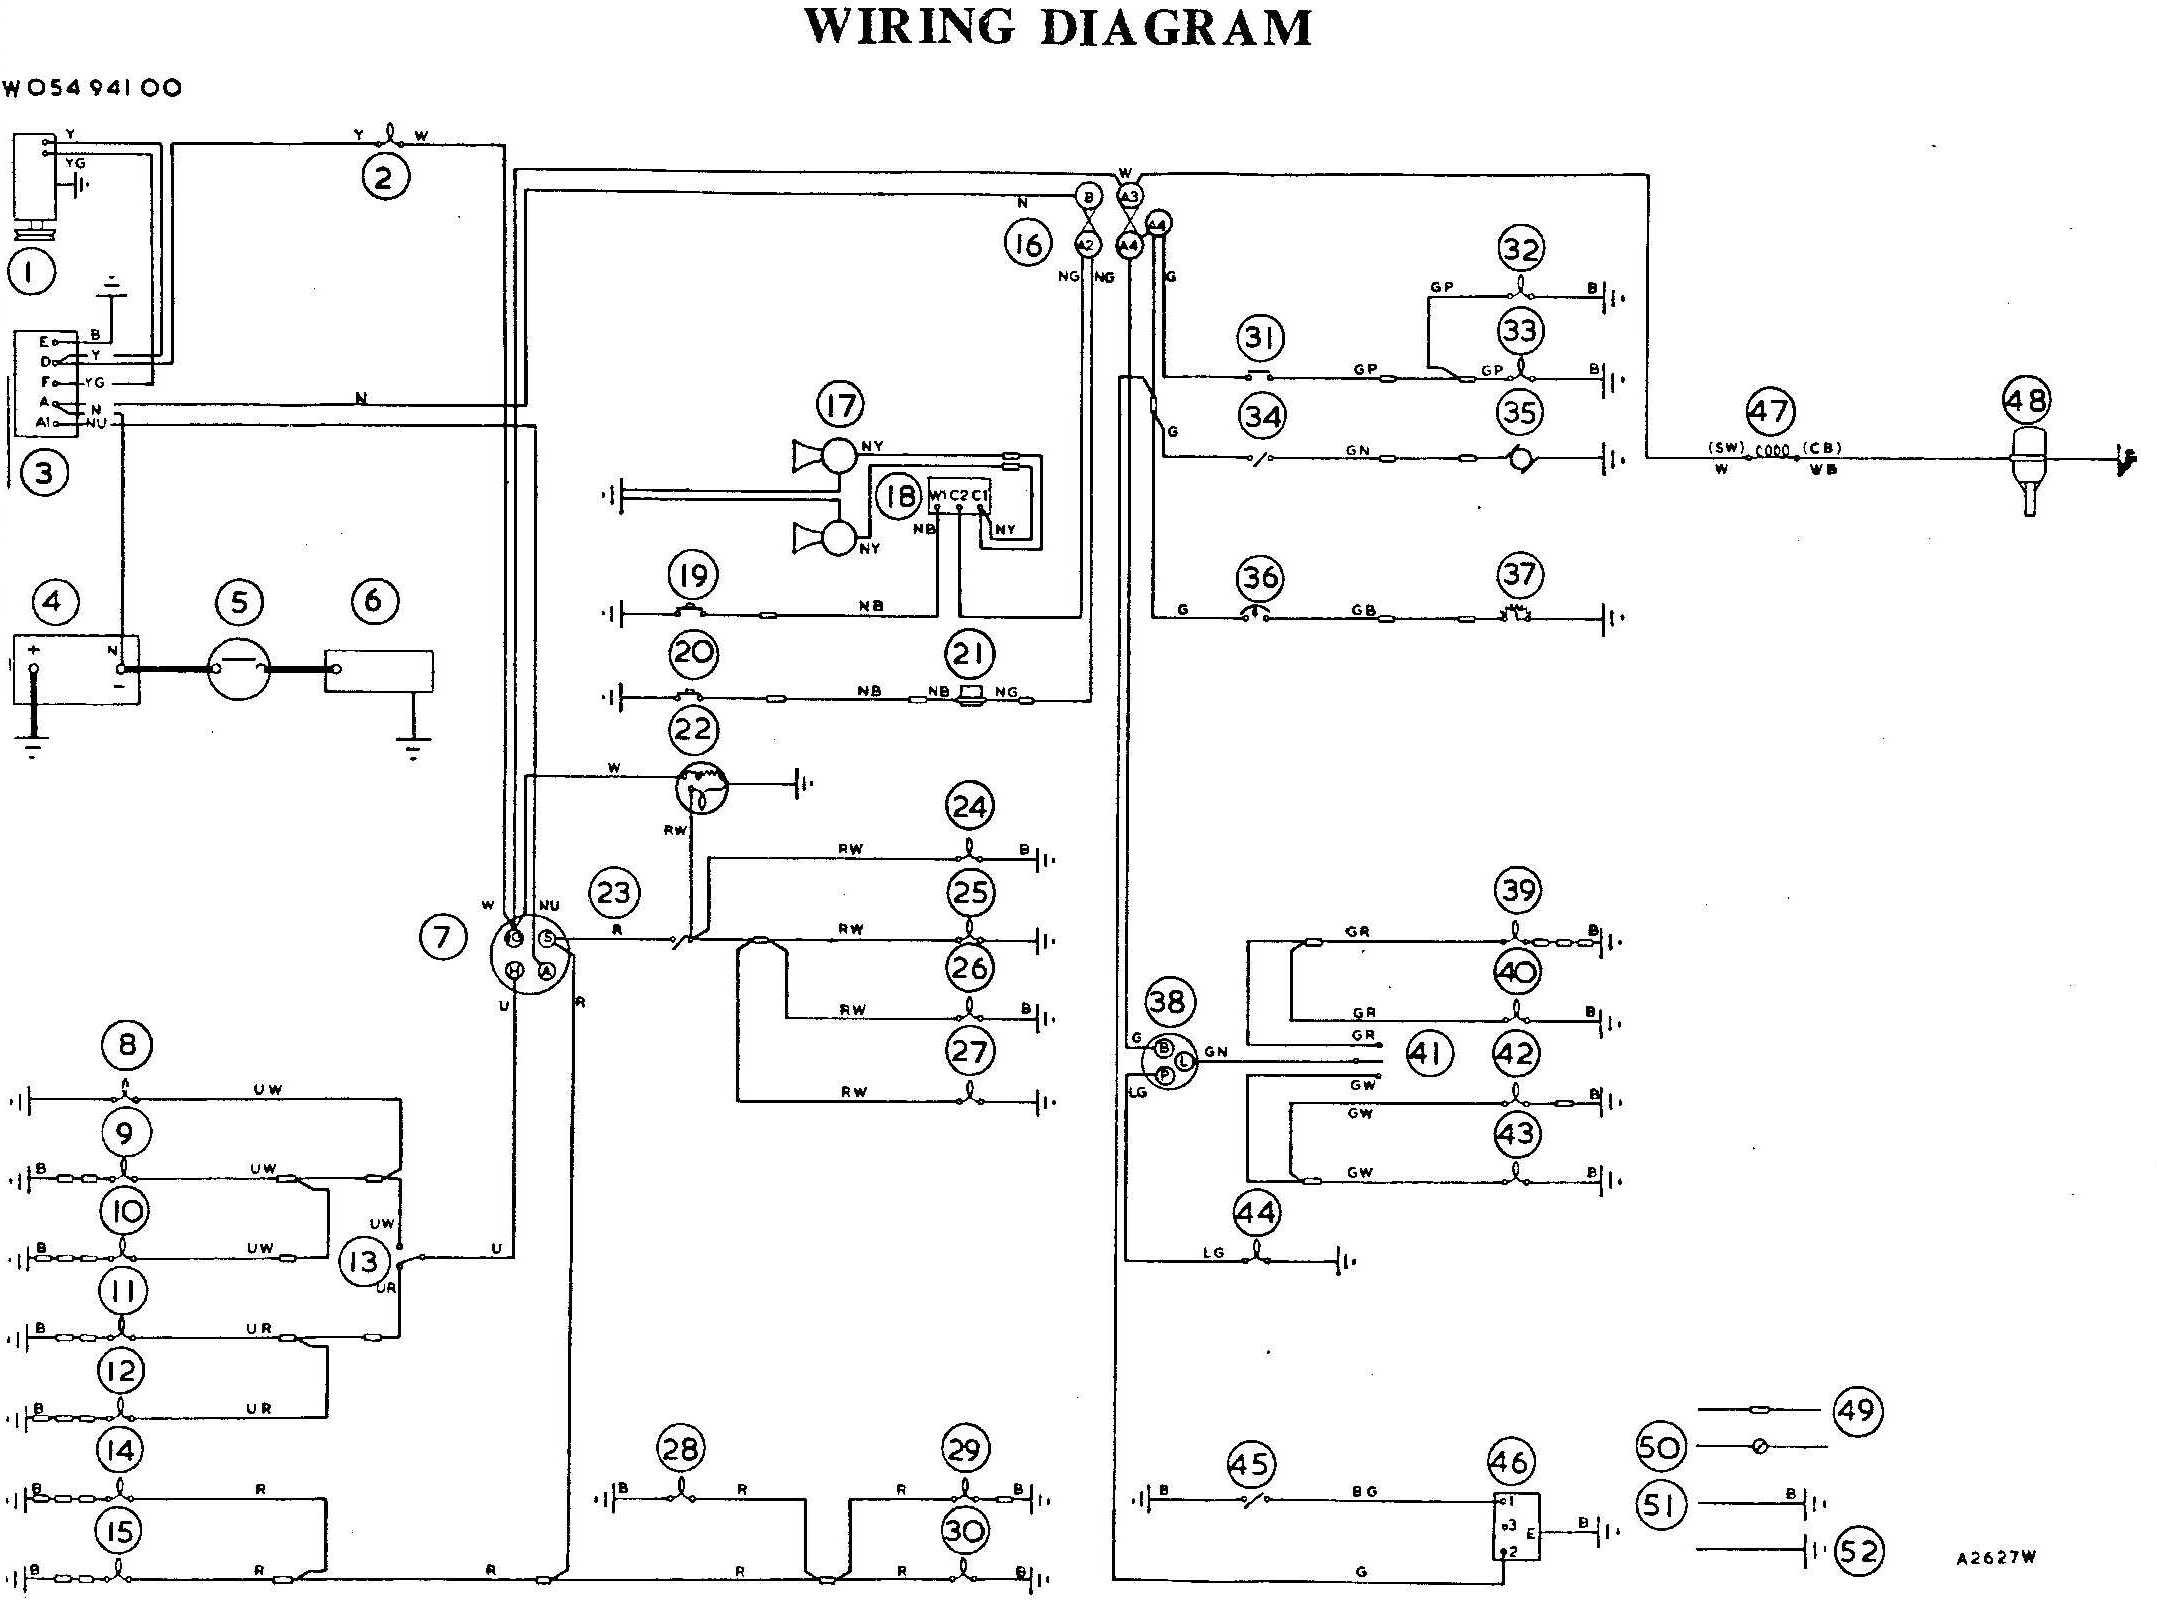 wiringdiag bugeye wiring diagrams wiring harness bugeye sprite at mifinder.co